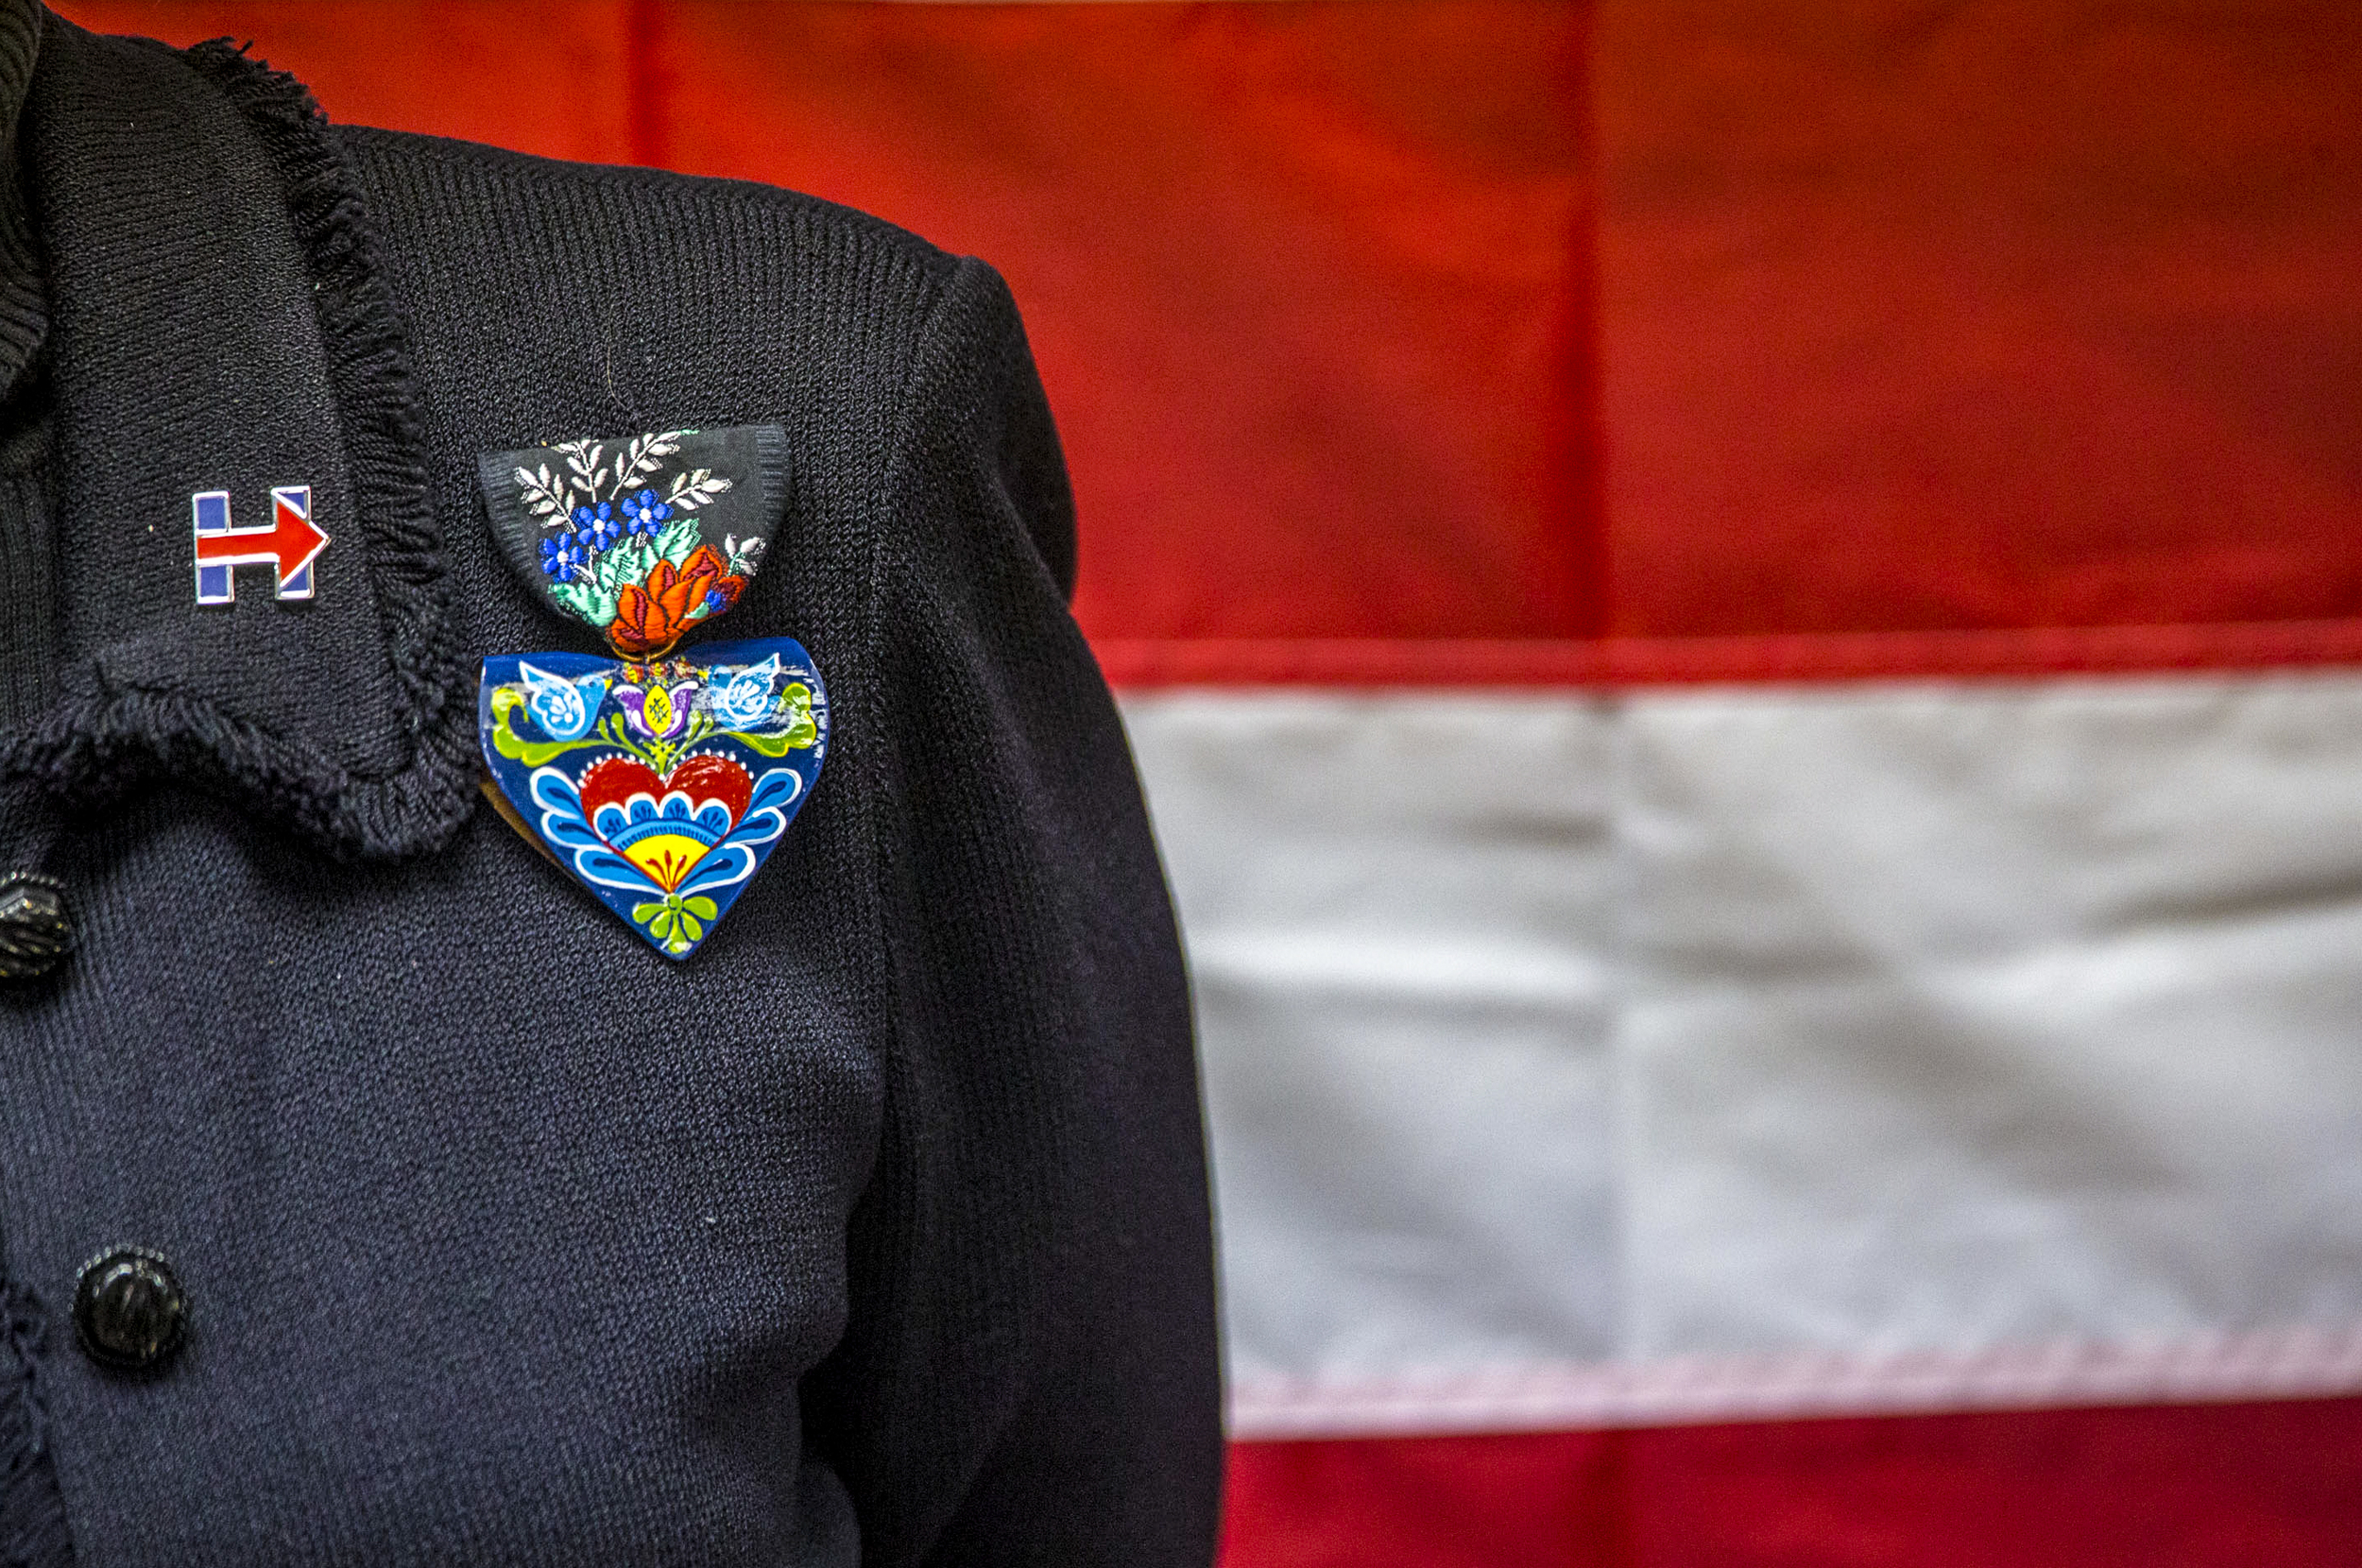 Former U.S. Secretary of State Madeleine Albright's famous pins are accompanied by a Hillary Clinton pin as she speaks at the Hillary for Iowa office in Cedar Rapids, Iowa, Sunday Jan. 17, 2016. Albright spoke to the crowded room about her close ties with the Clintons after serving as the first female U.S. Secretary of State while President Bill Clinton was in office. She used the opportunity to speak about presidential candidate Hillary Clinton's policies and to answer questions on her behalf.